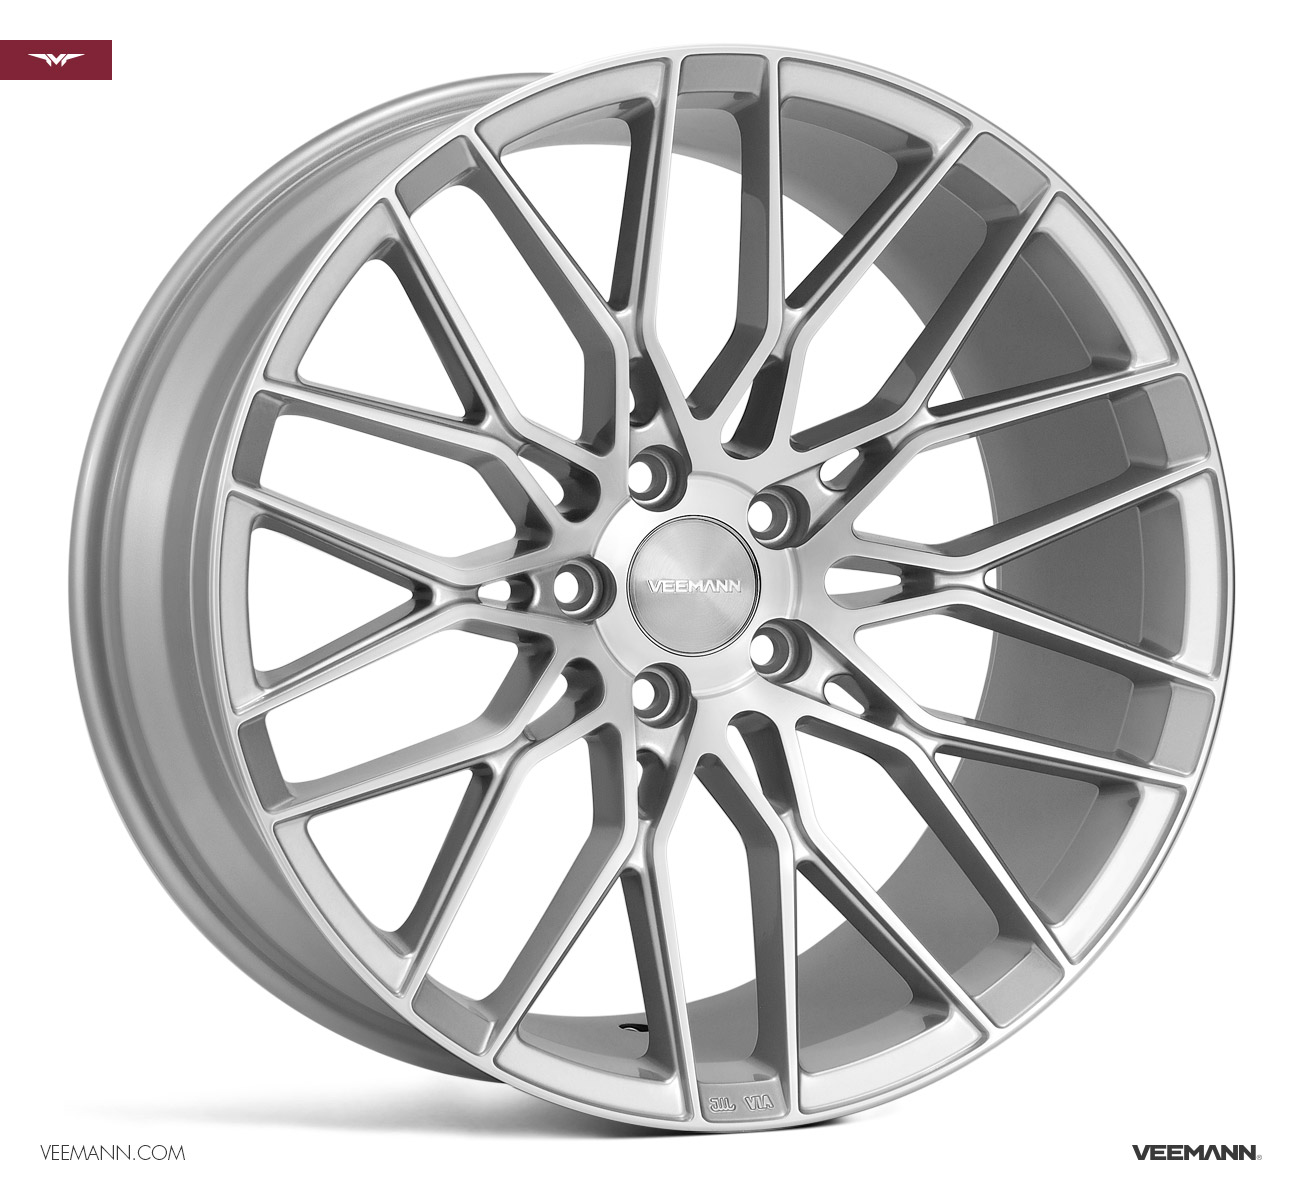 "NEW 19"" VEEMANN V-FS34 ALLOY WHEELS IN SILVER POL WITH WIDER 9.5"" REARS"